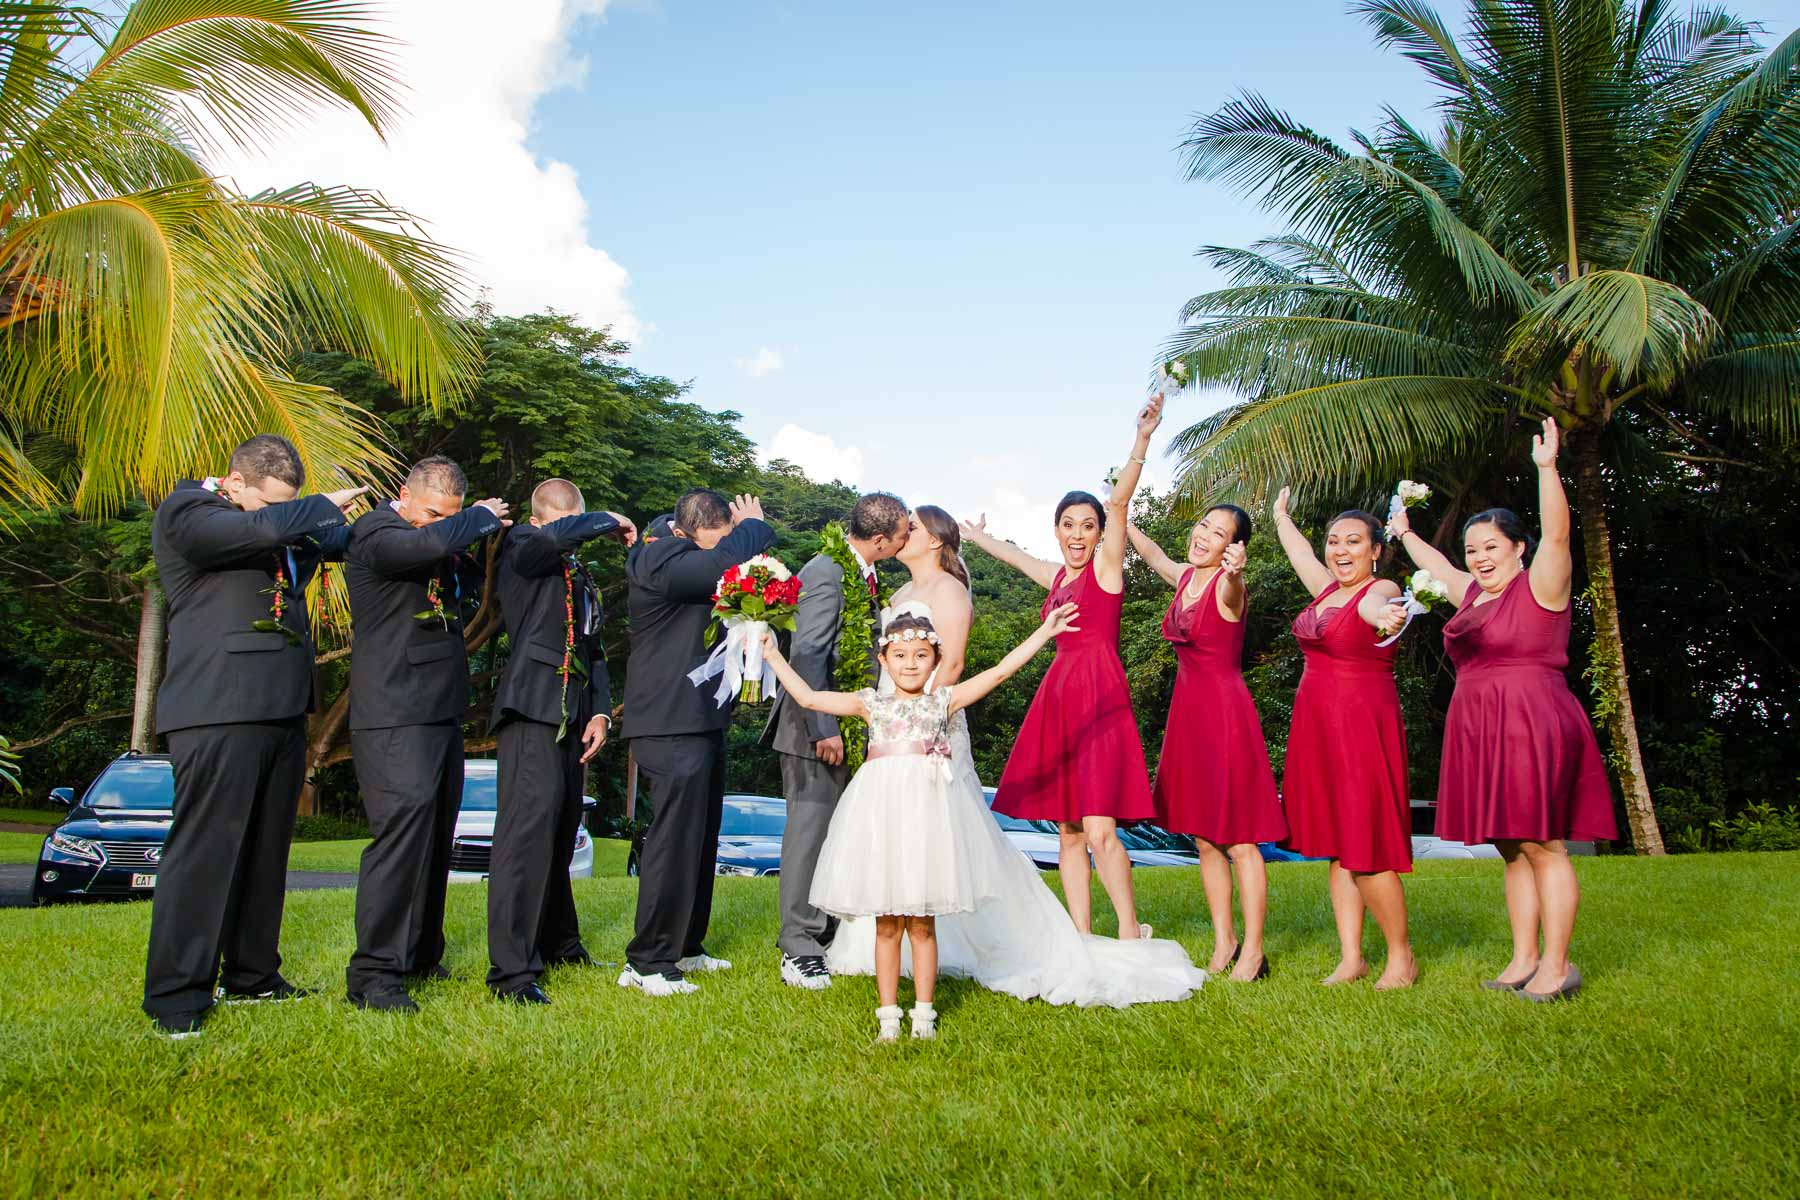 bridal party portrait oahu hawaii wedding reception